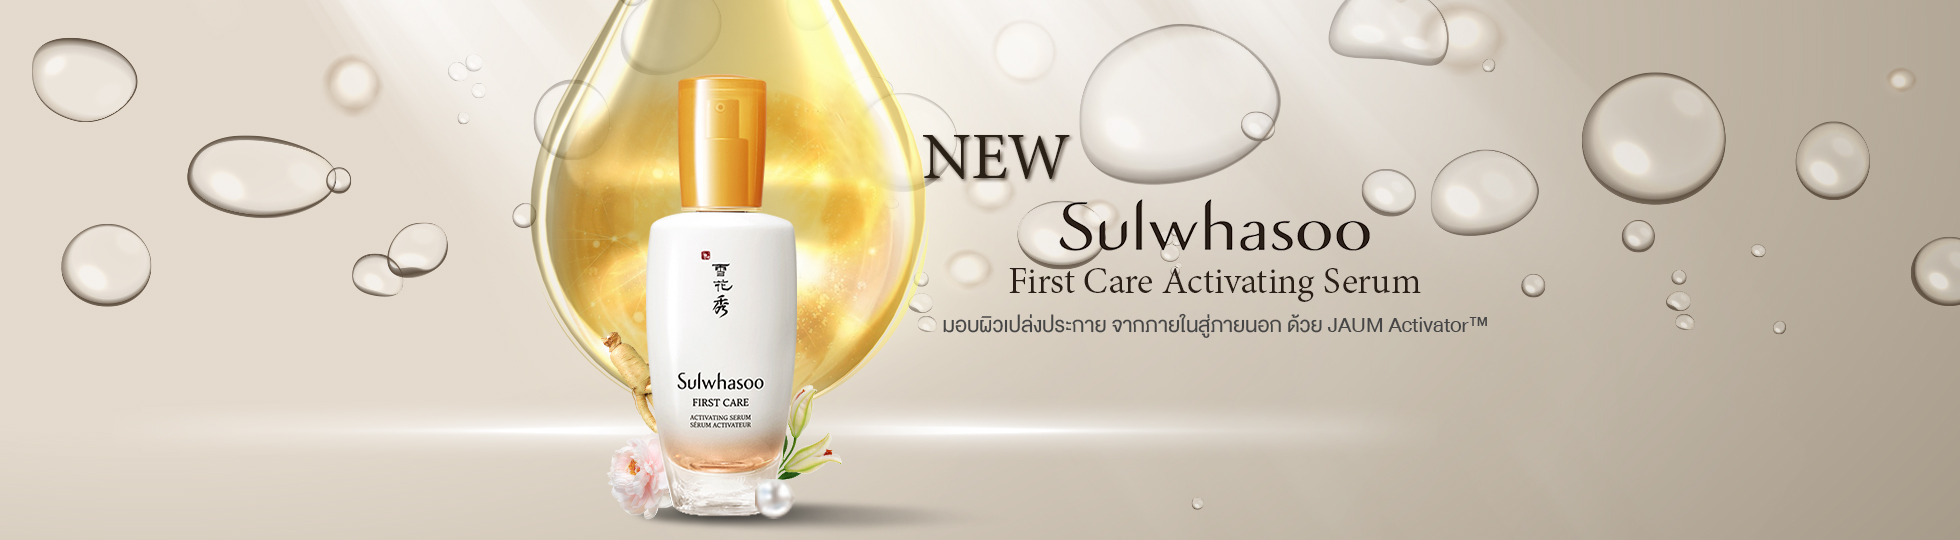 https://www.konvy.com/sulwhasoo/sulwhasoo-first-care-activating-serum-ex-60ml-6928.html